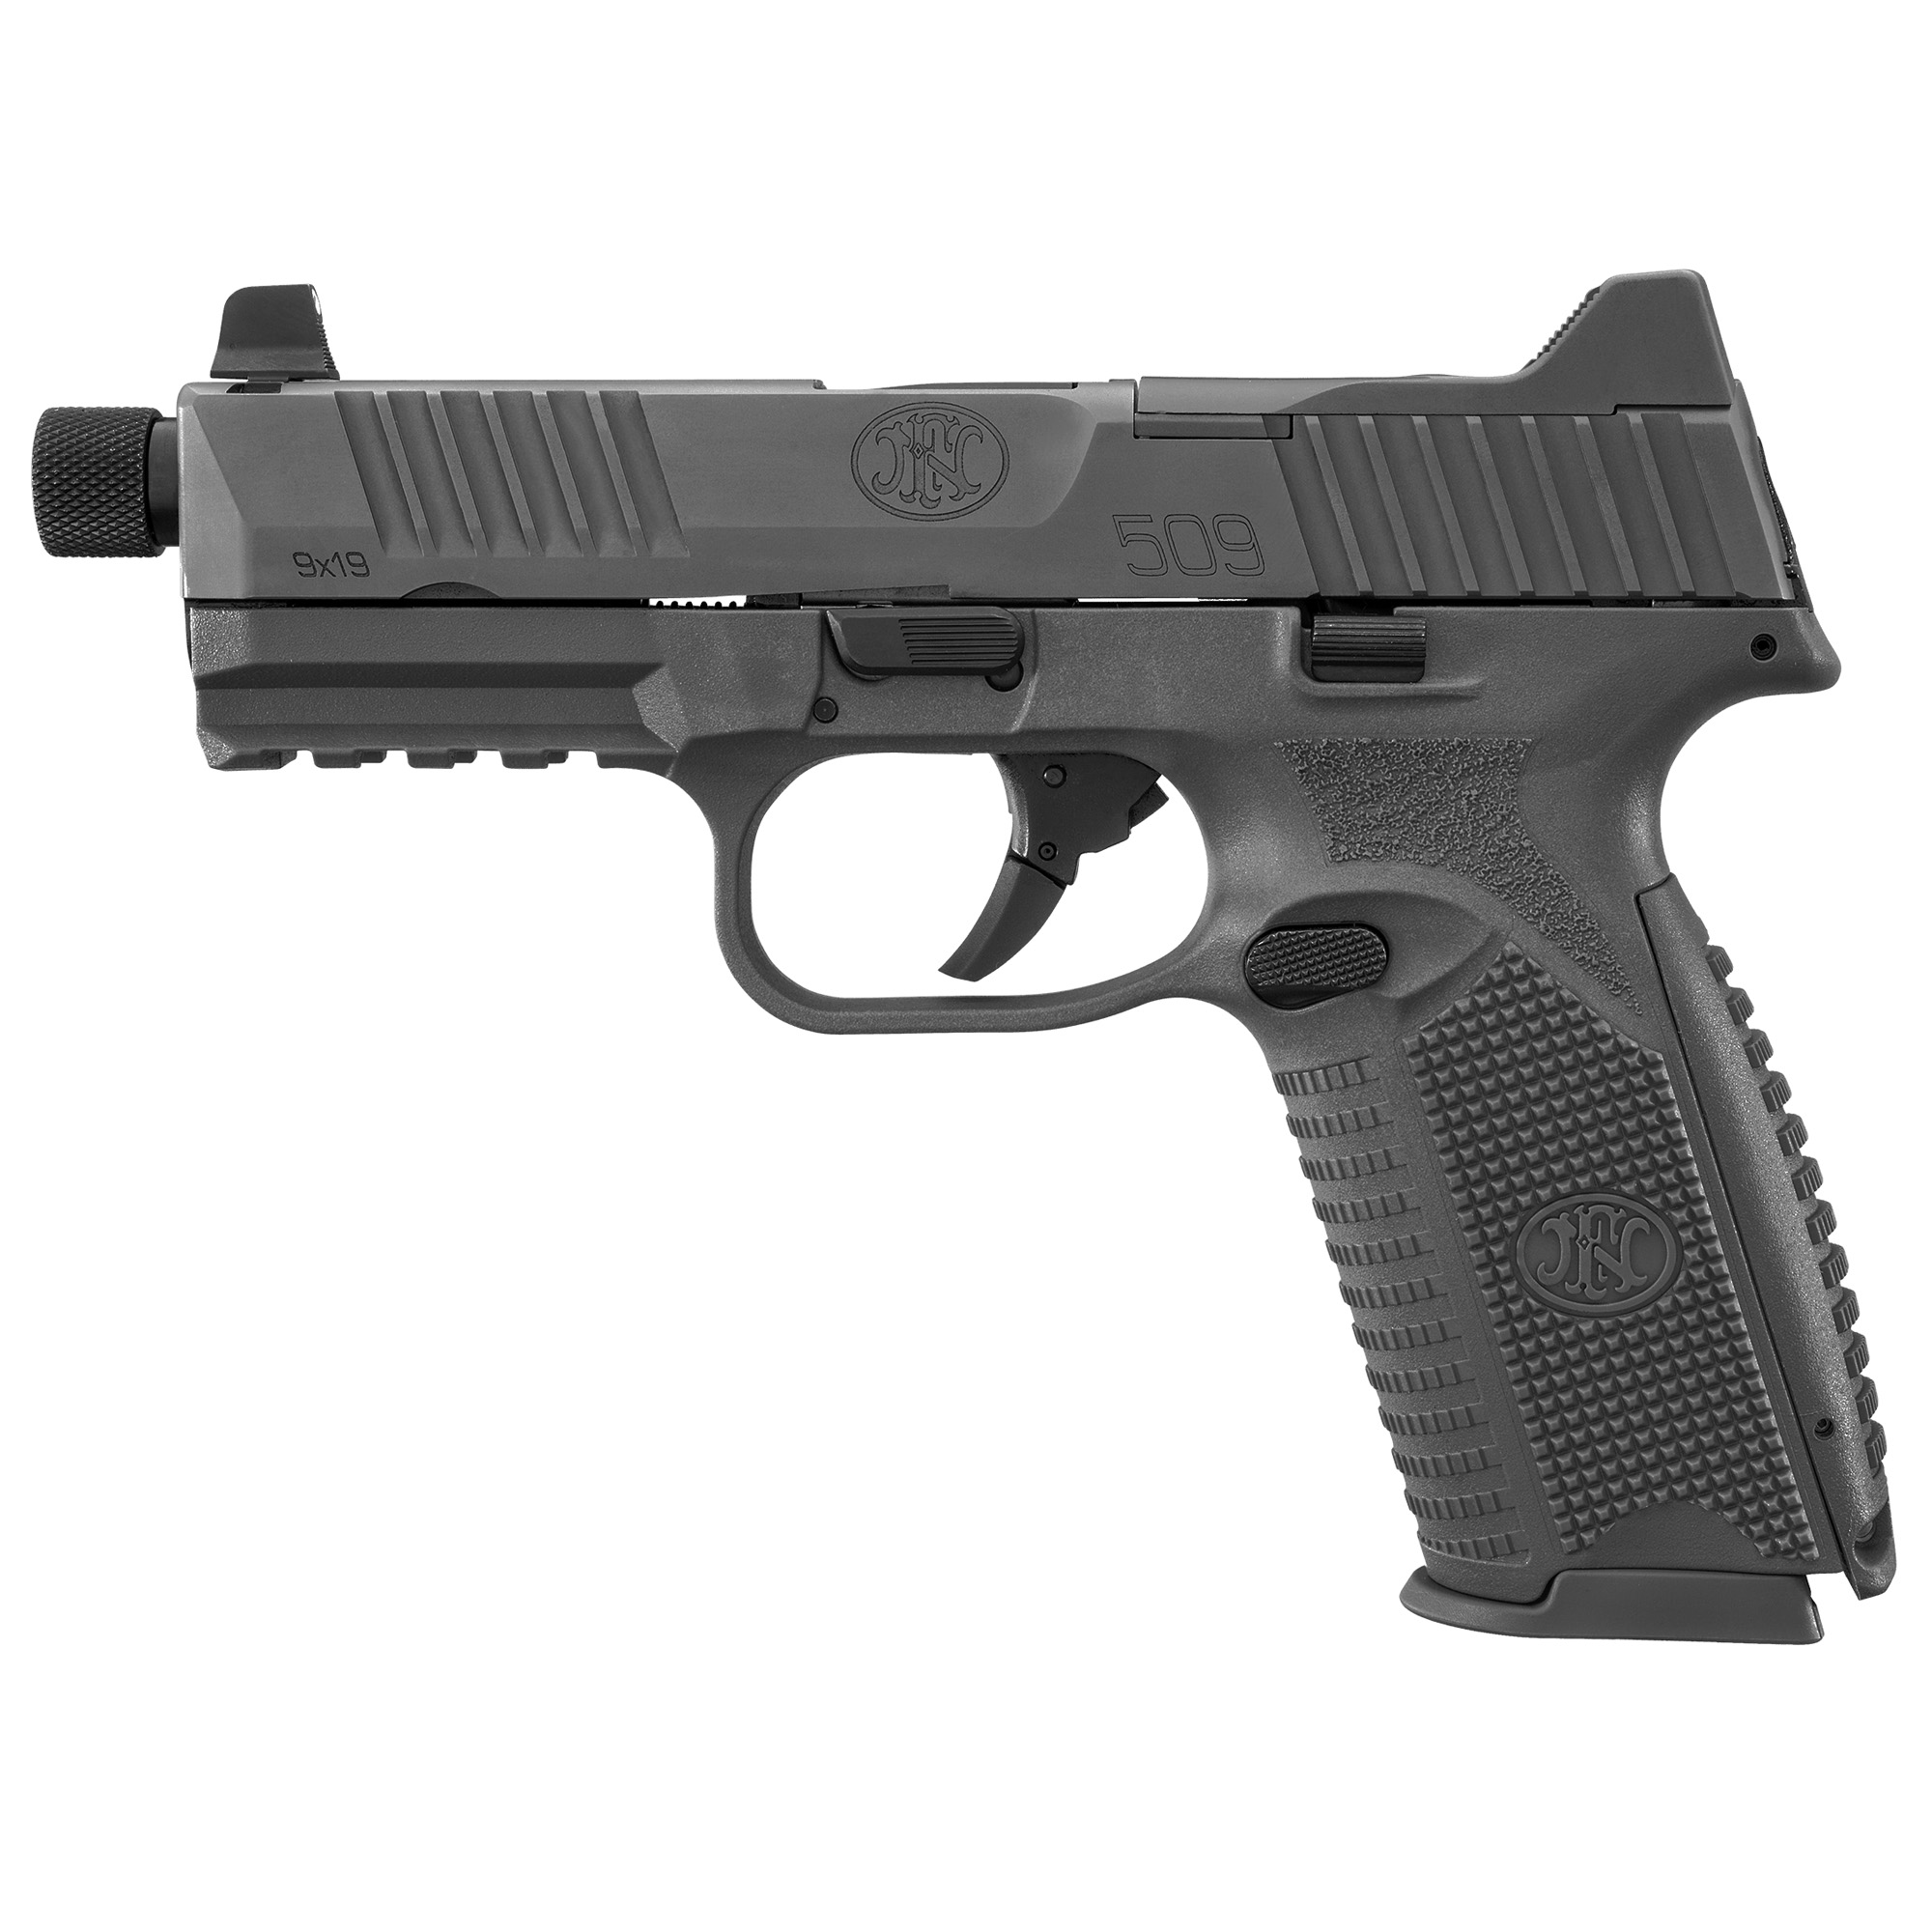 """The FN 509(R) Tactical"""" an extension of the FN 509 family"""" is based on FN's submission pistol that the U.S. Army tested for its Modular Handgun Trials"""" but includes the significant improvements to the design that were implemented in the FN 509. The pistol features the company's patent-pending Low-Profile Optics Mounting System(TM) that enables the platform to accept more than ten commercially-available miniature red dot (MRD) optics that co-witness with the suppressor-height night sights and remain adaptable to future optics releases with no requirement of direct milling of the slide. The slide cap"""" for use when not shooting with an optic"""" has raised sight wings that protect iron sight alignment if the pistol is dropped or jostled"""" and provides a textured ramp for racking the slide against a belt loop"""" pant pocket or boot. An FN-signature 4.5-inch"""" cold hammer-forged"""" stainless-steel barrel with target crown"""" 1/2"""" x 28 threads that accept the bulk of 9mm suppressors available and thread cap with integrated O-ring to prevent loosening during use complete the top end."""